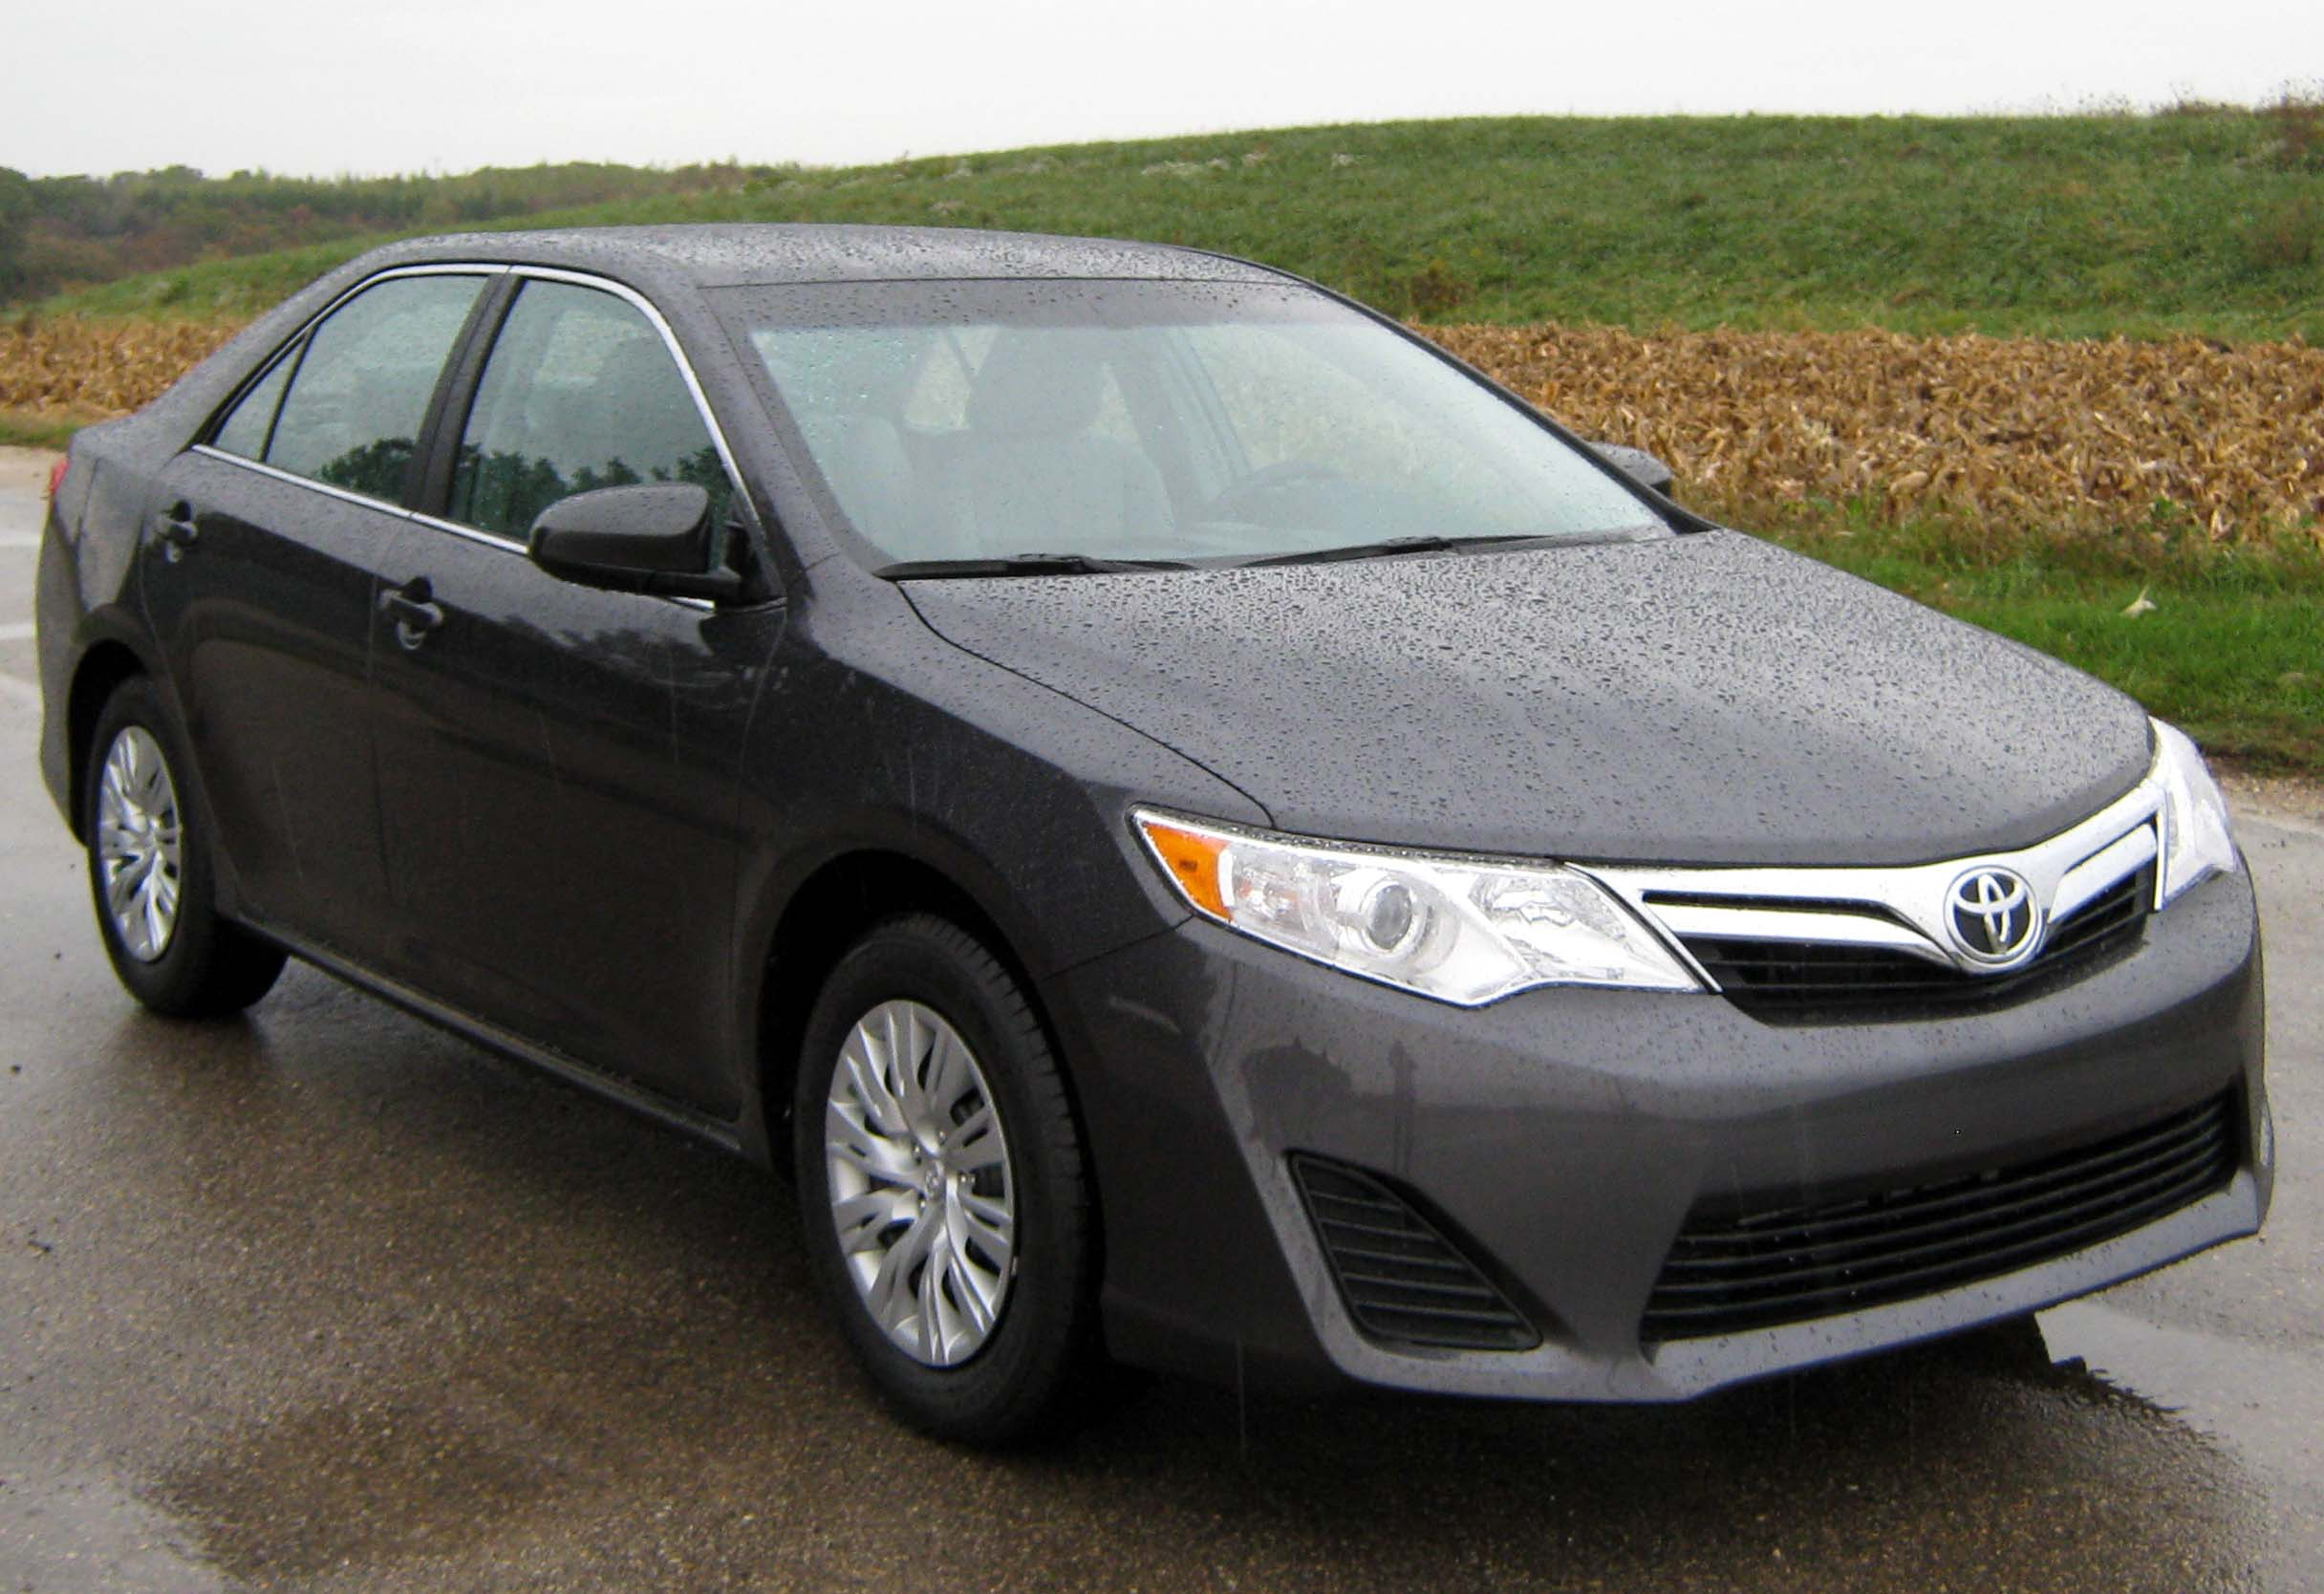 file 2012 toyota camry le nhtsa wikimedia commons. Black Bedroom Furniture Sets. Home Design Ideas